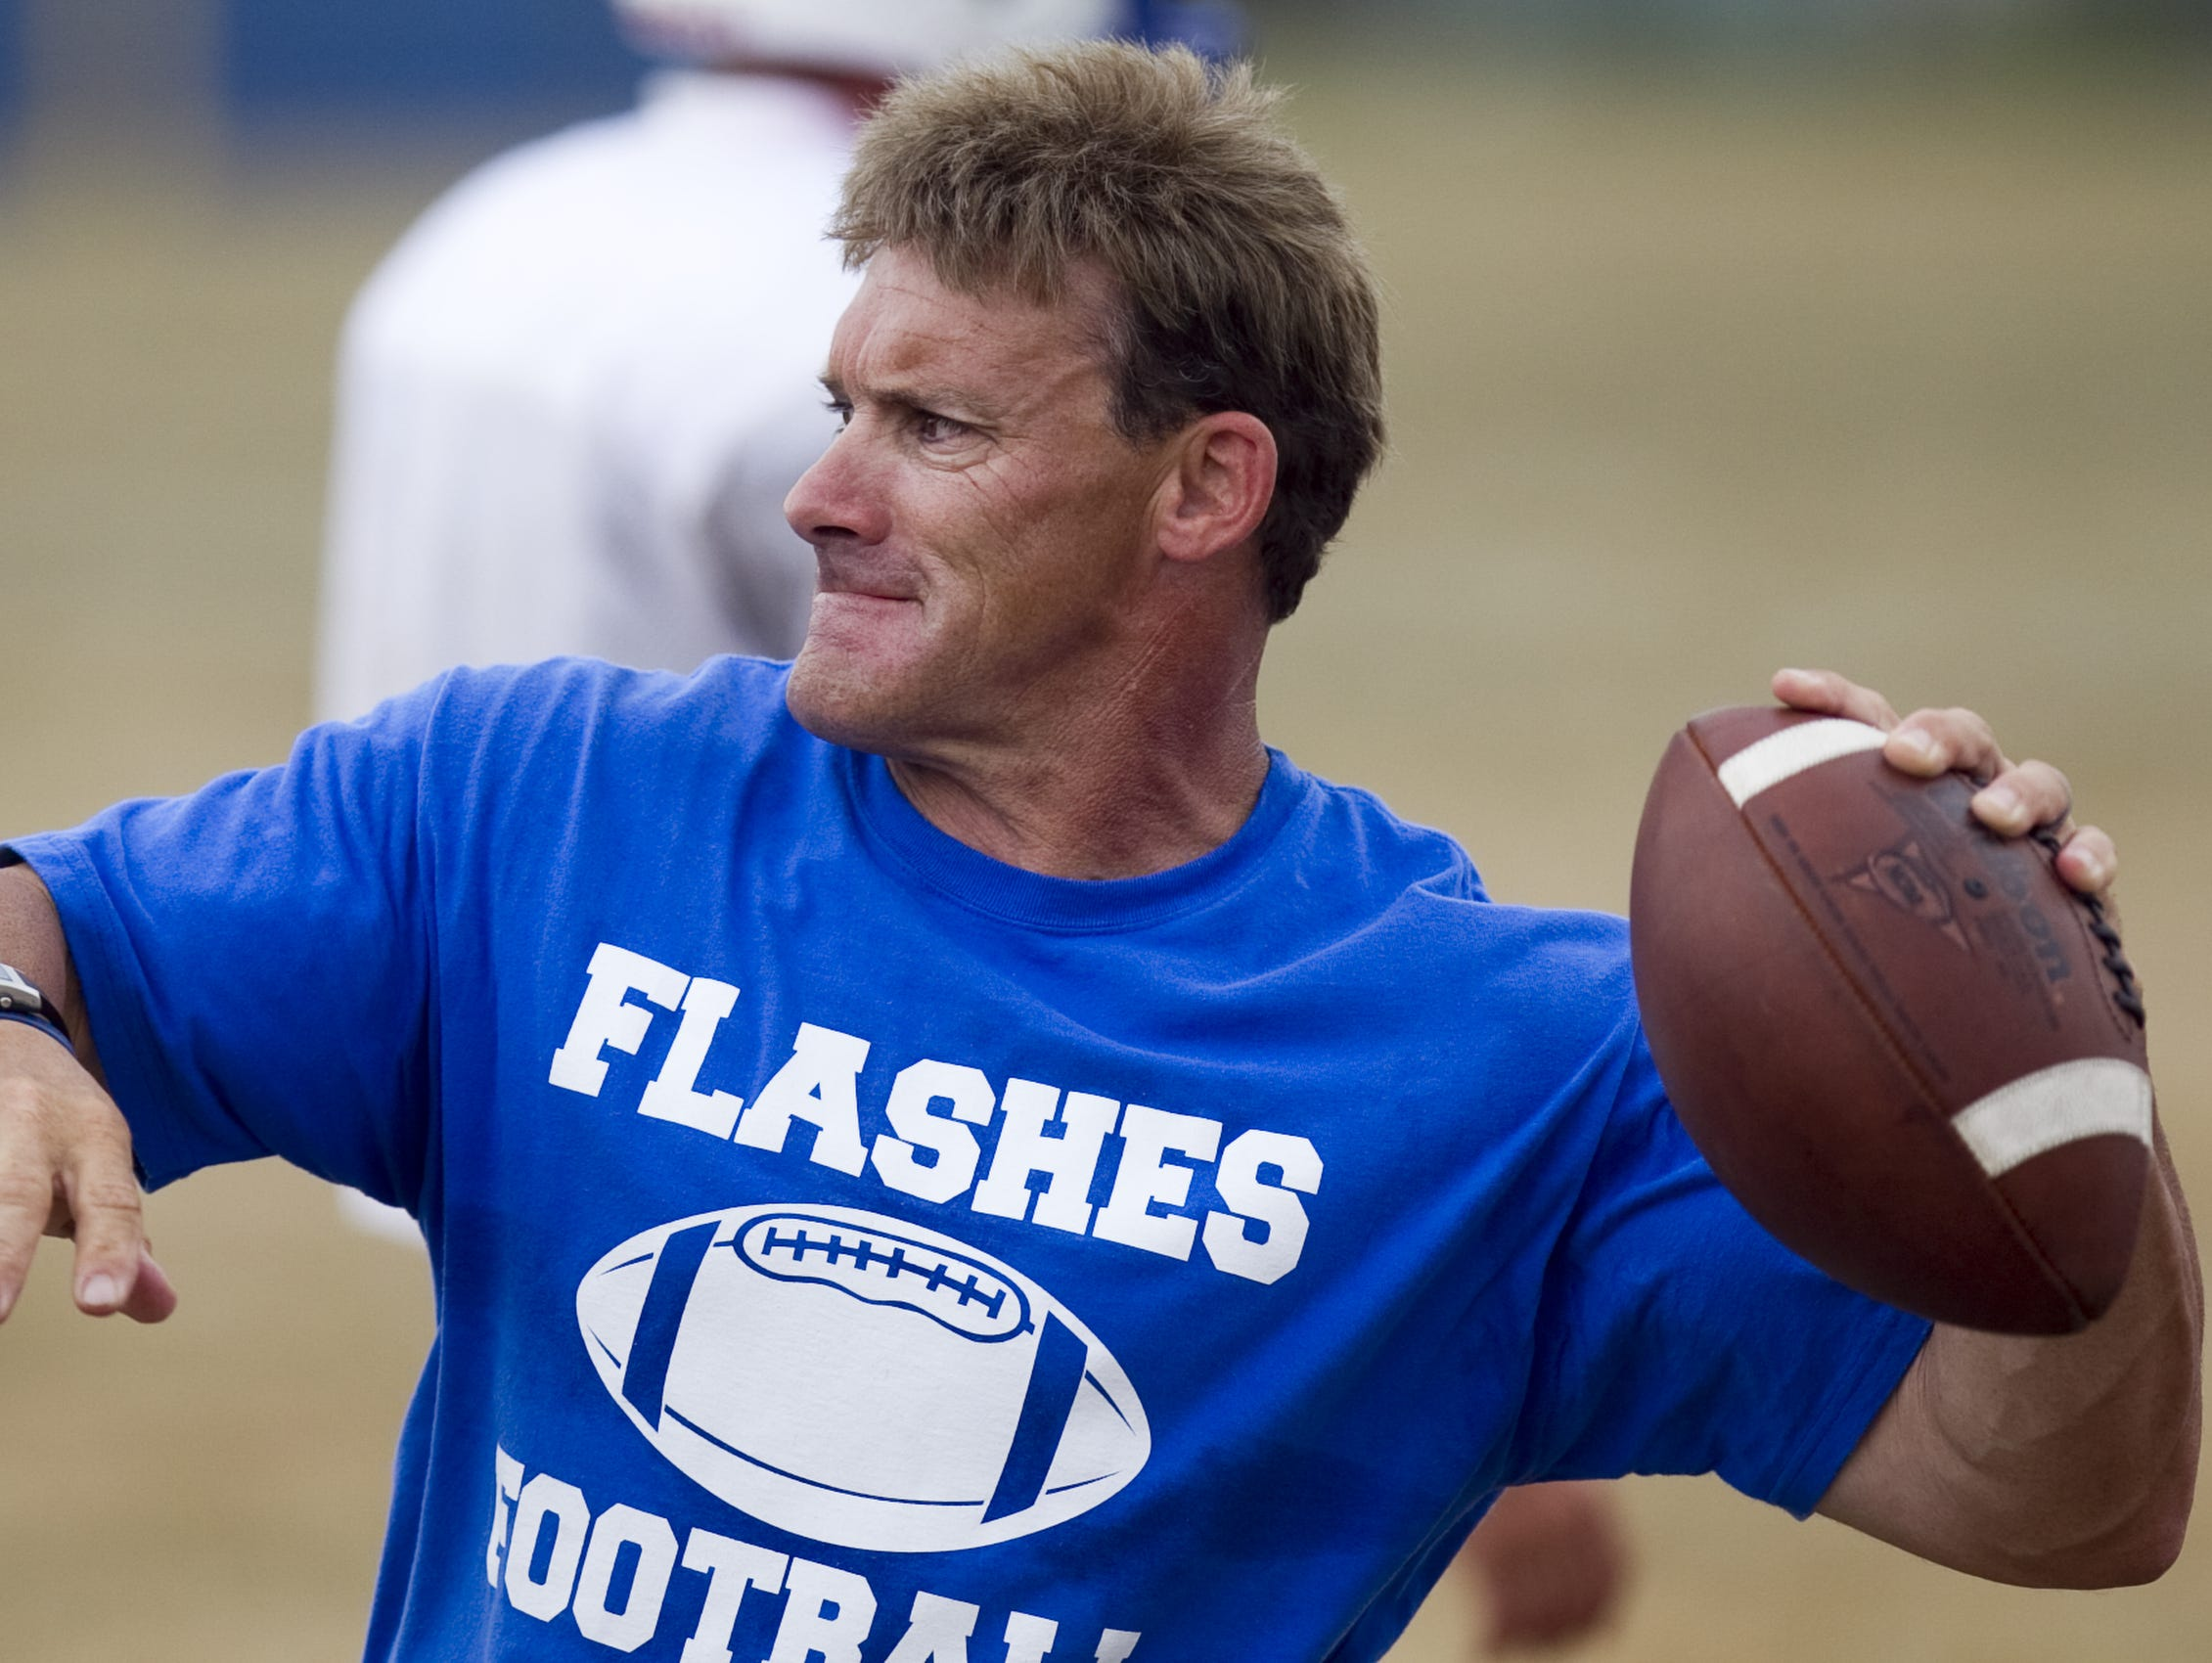 Burt Austin throws a ball to players at afternoon football practice at Franklin Central High School, Indianapolis, IN, Friday, August 5, 2011.